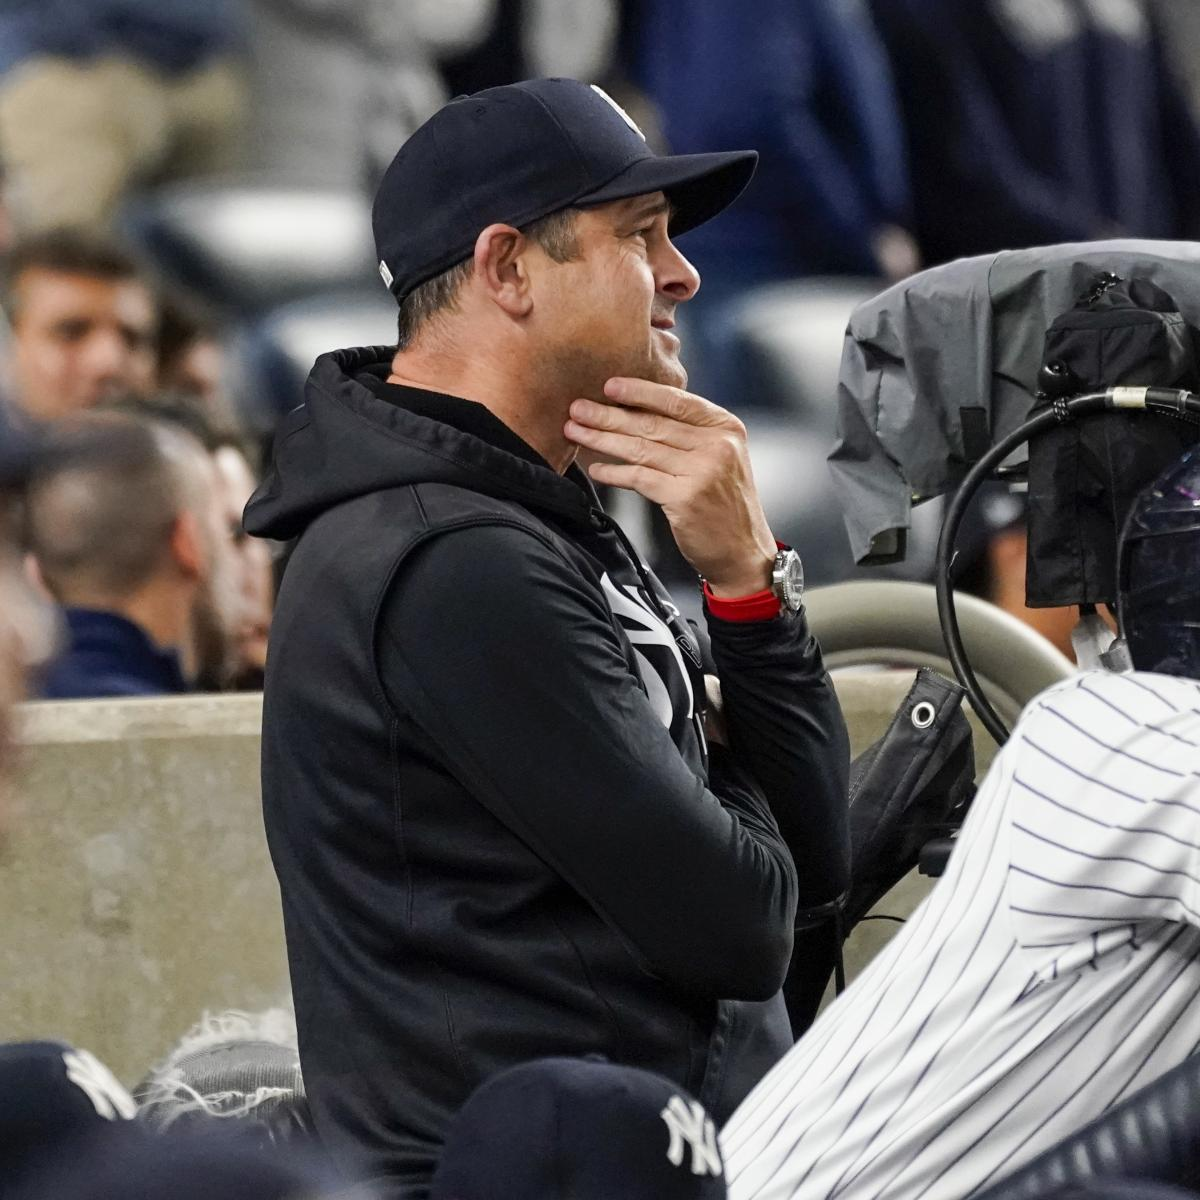 Yankees Fans Need to Stop Blaming Aaron Boone and Shift Anger to Front Office